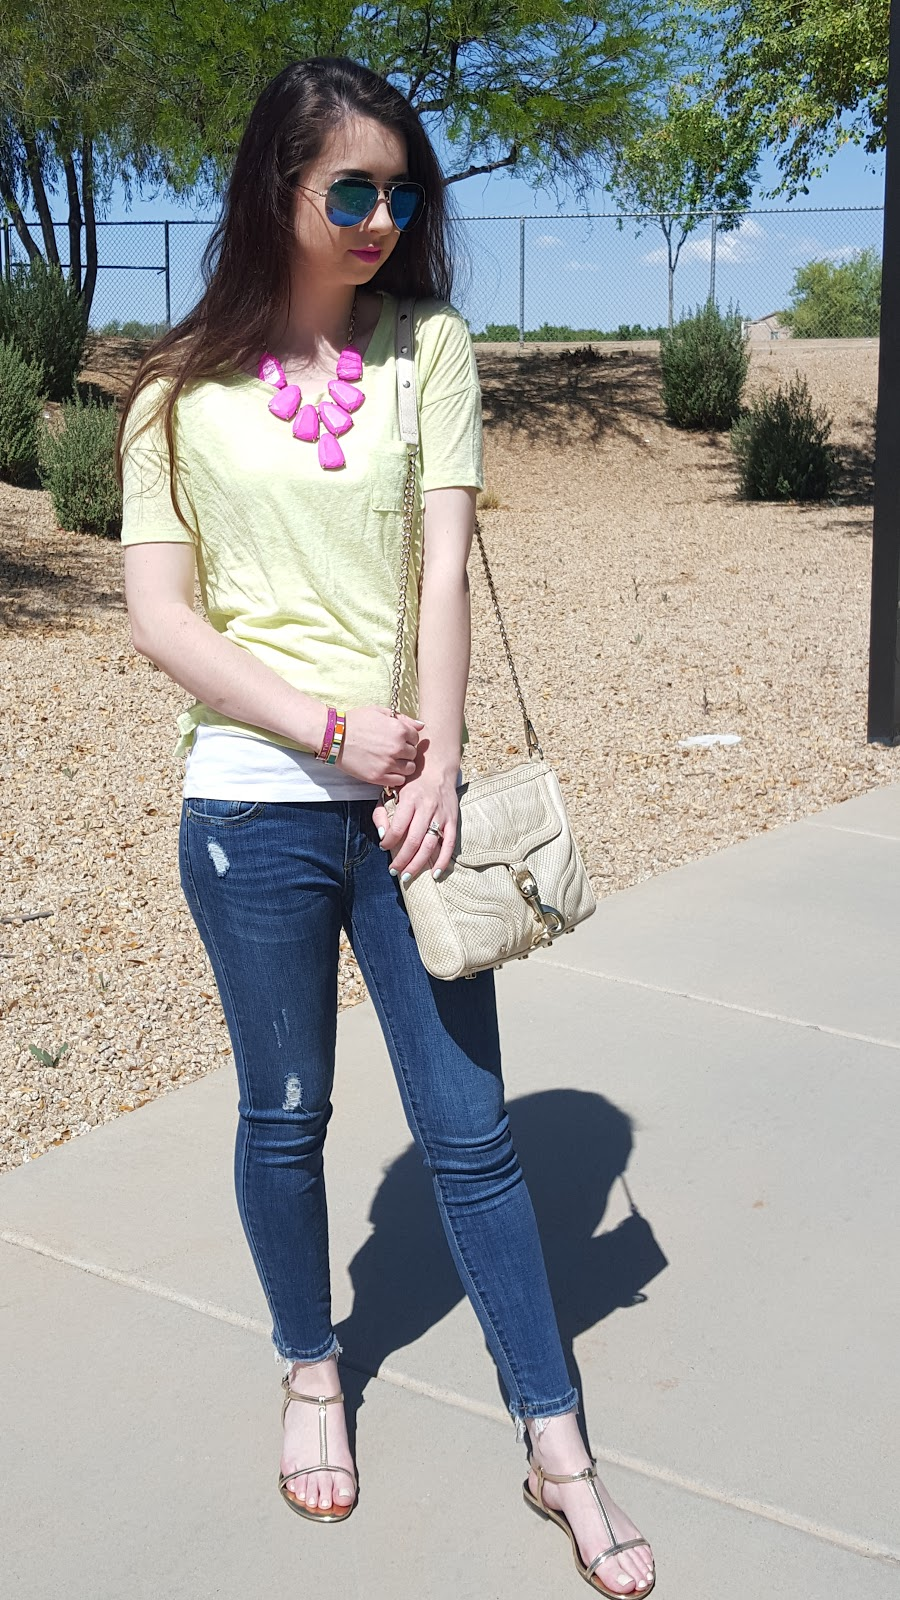 colorful tee and accessories- casual Spring outfit idea